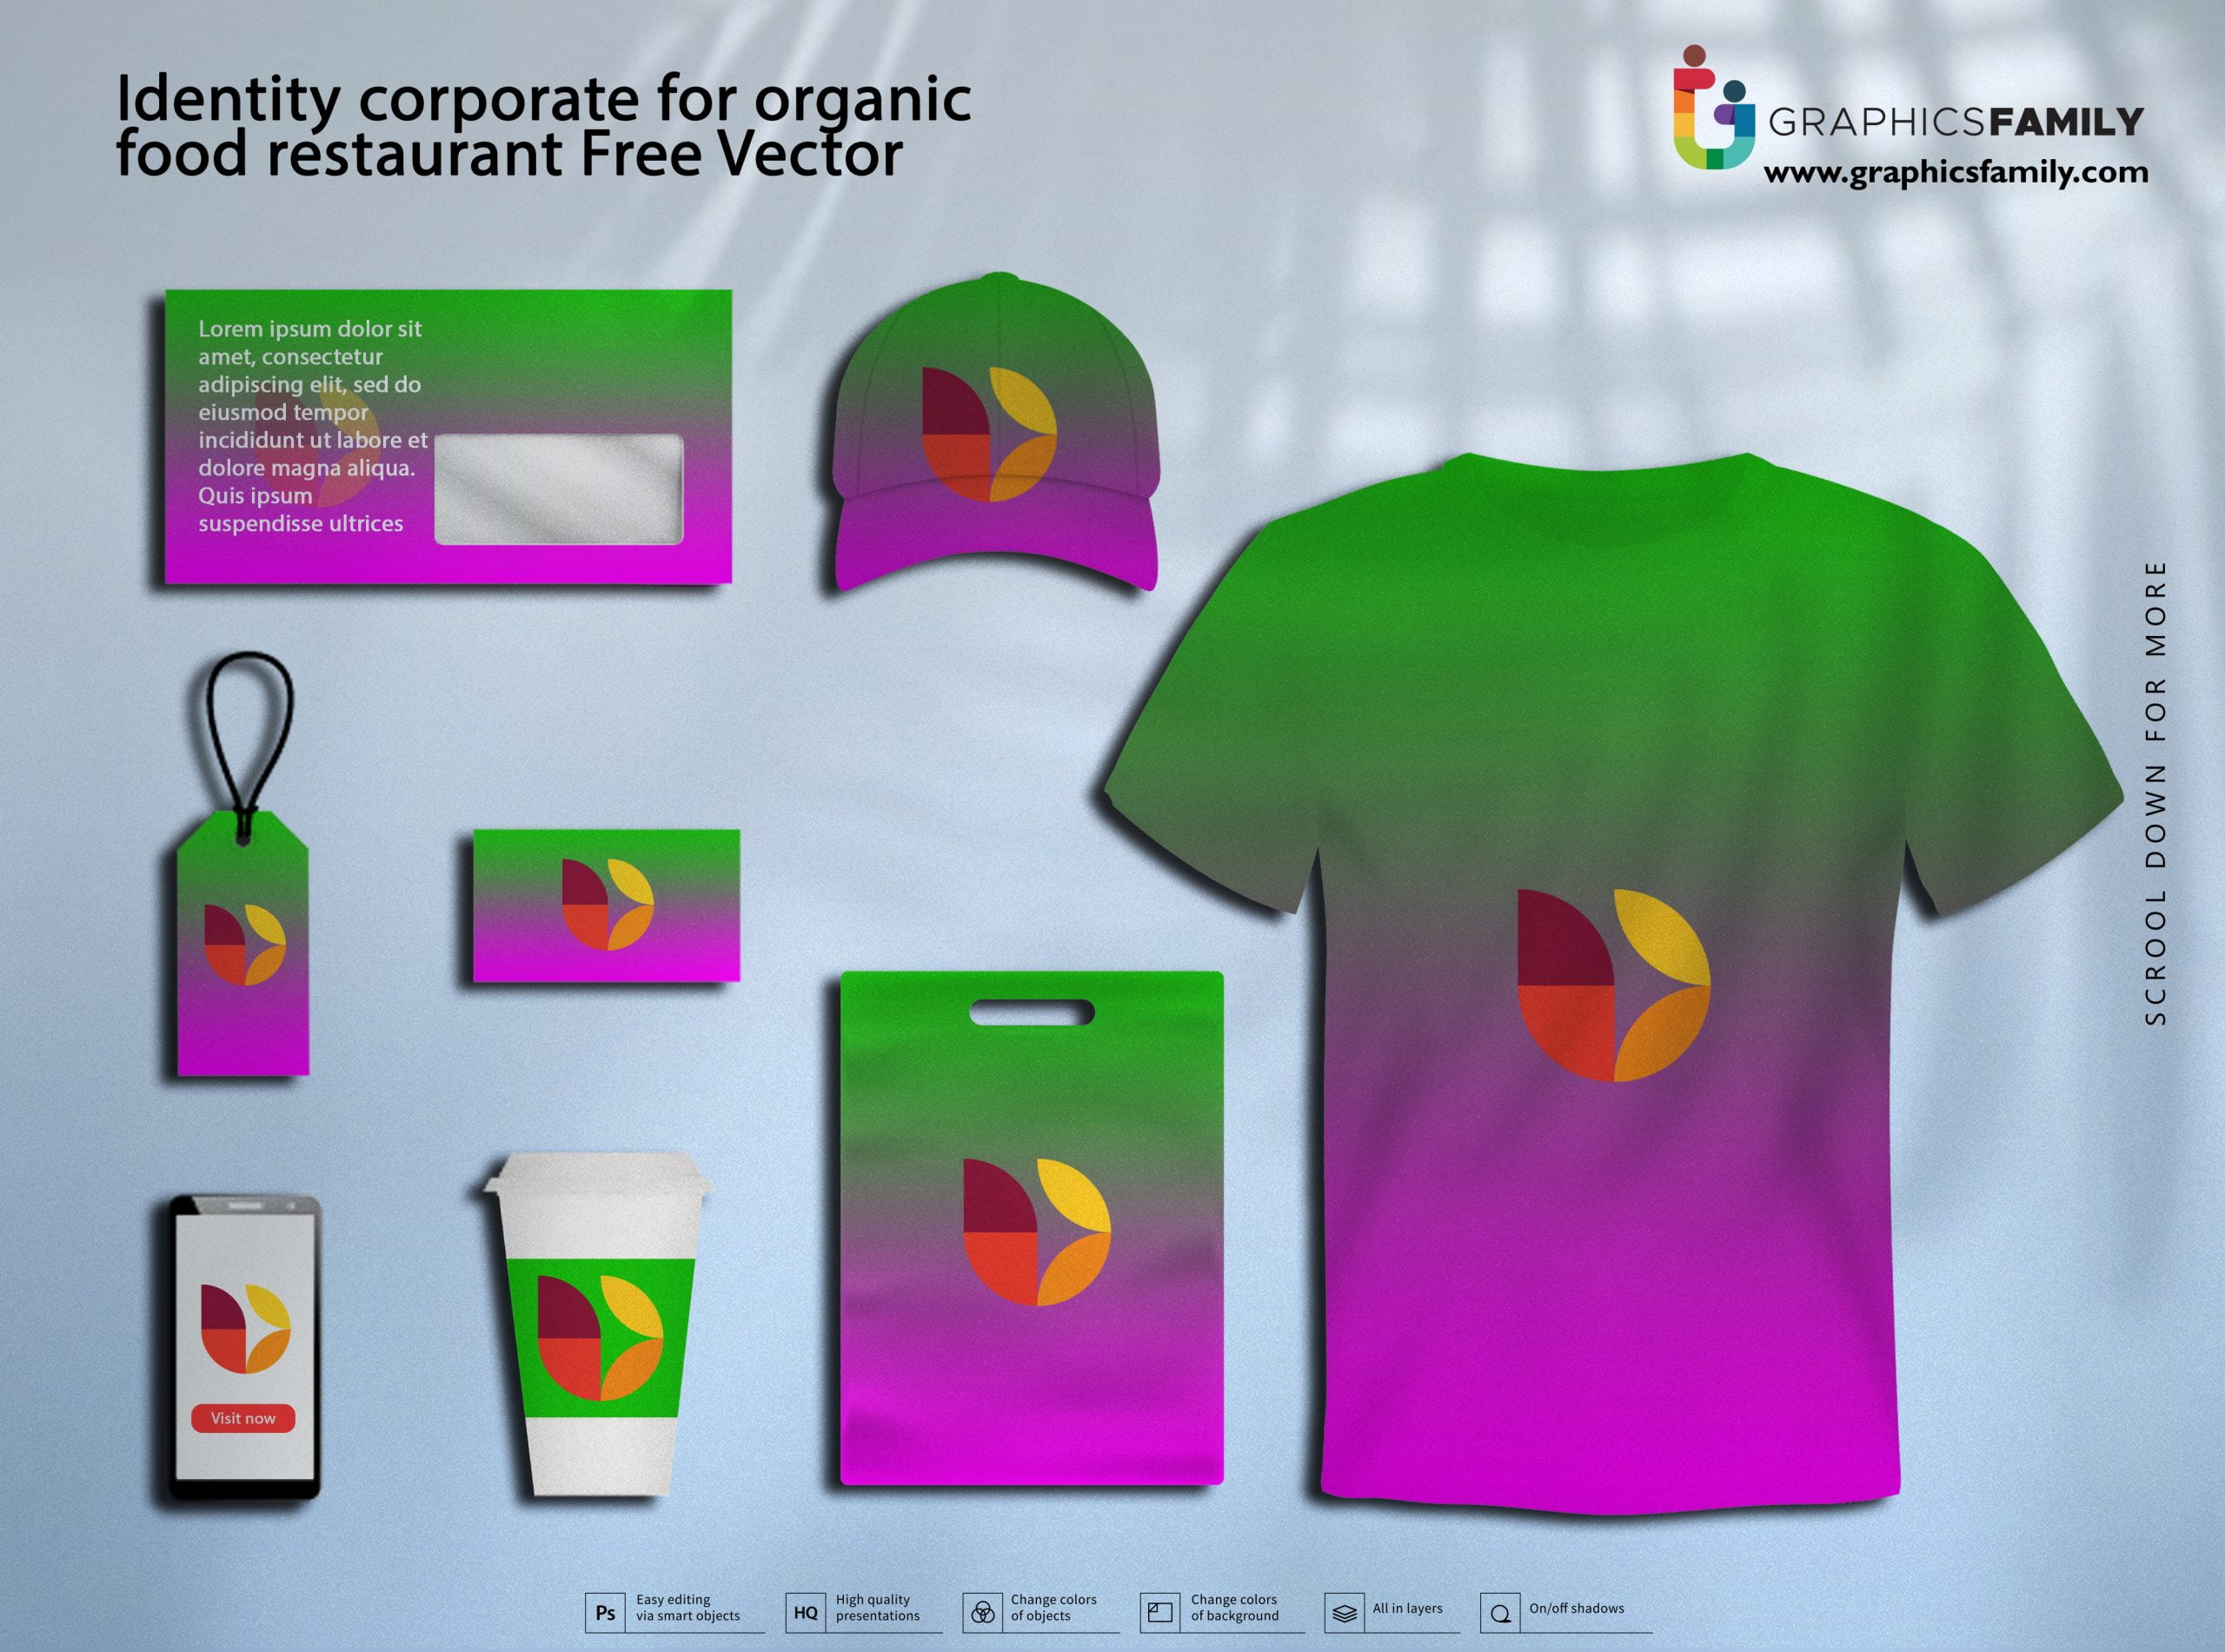 Identity corporate for organic food restaurant Free Vector Download